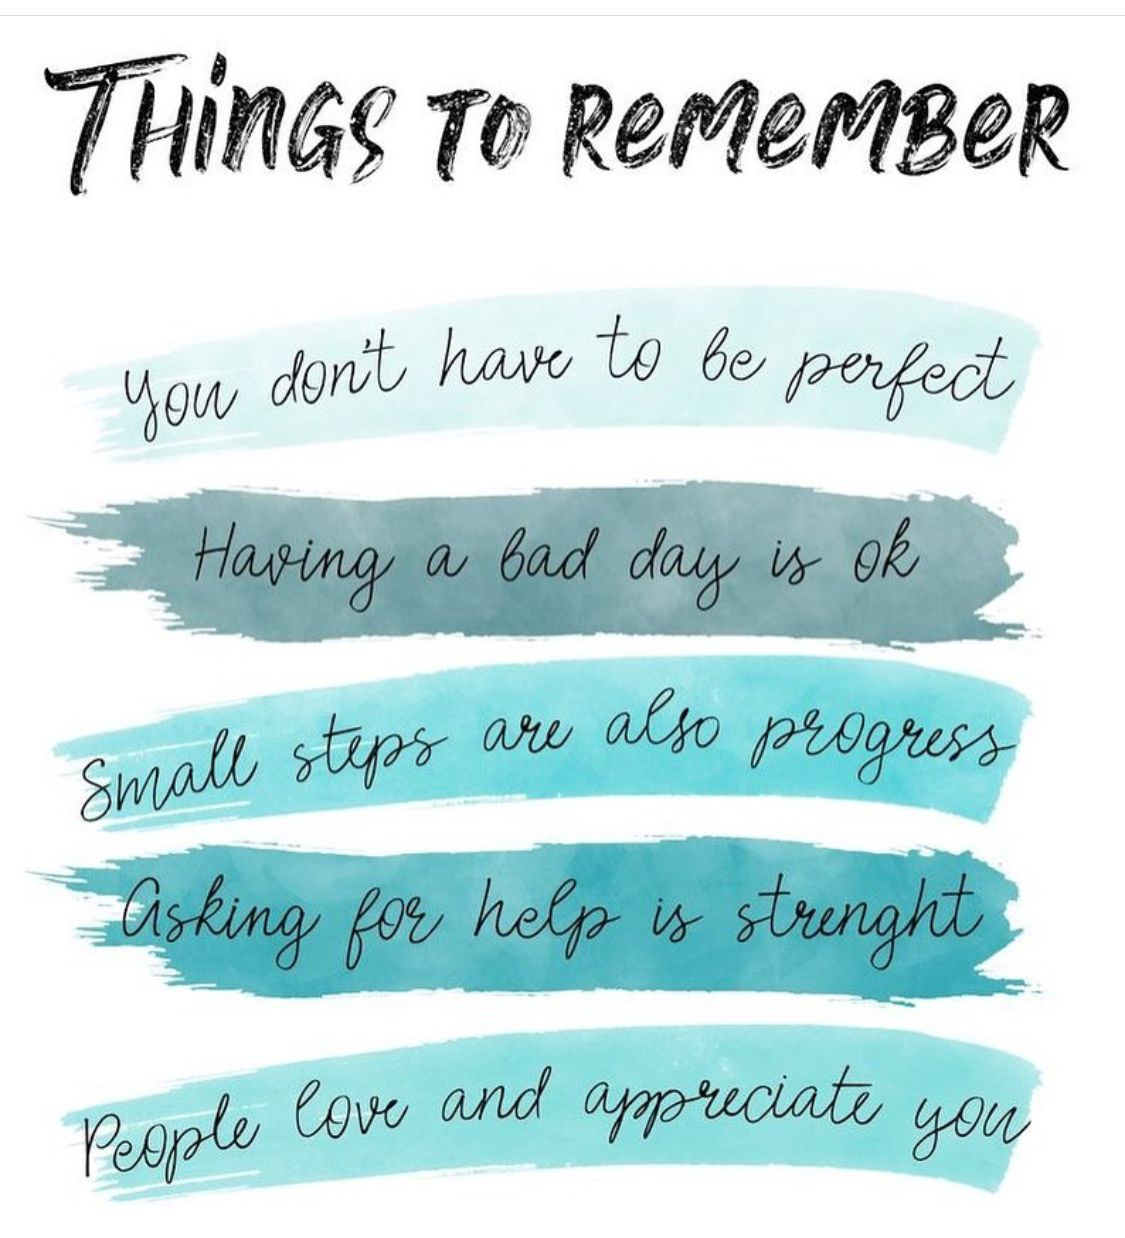 Pin By Becky Garling On Words Quotes Text Bad Day Quotes Inspiring Quotes About Life Short Inspirational Quotes